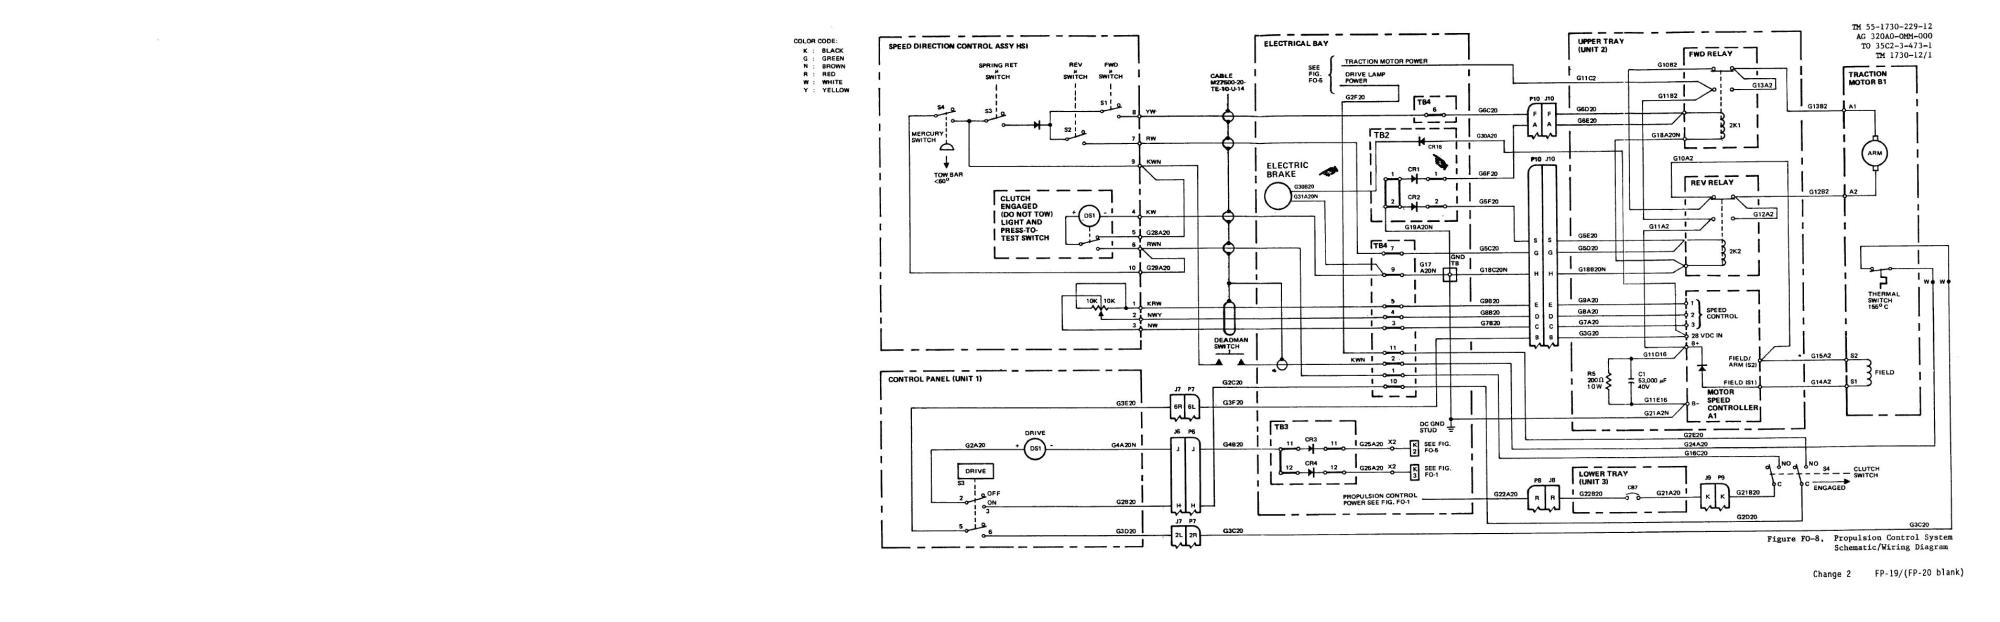 hight resolution of propulsion control system schematic wiring diagram